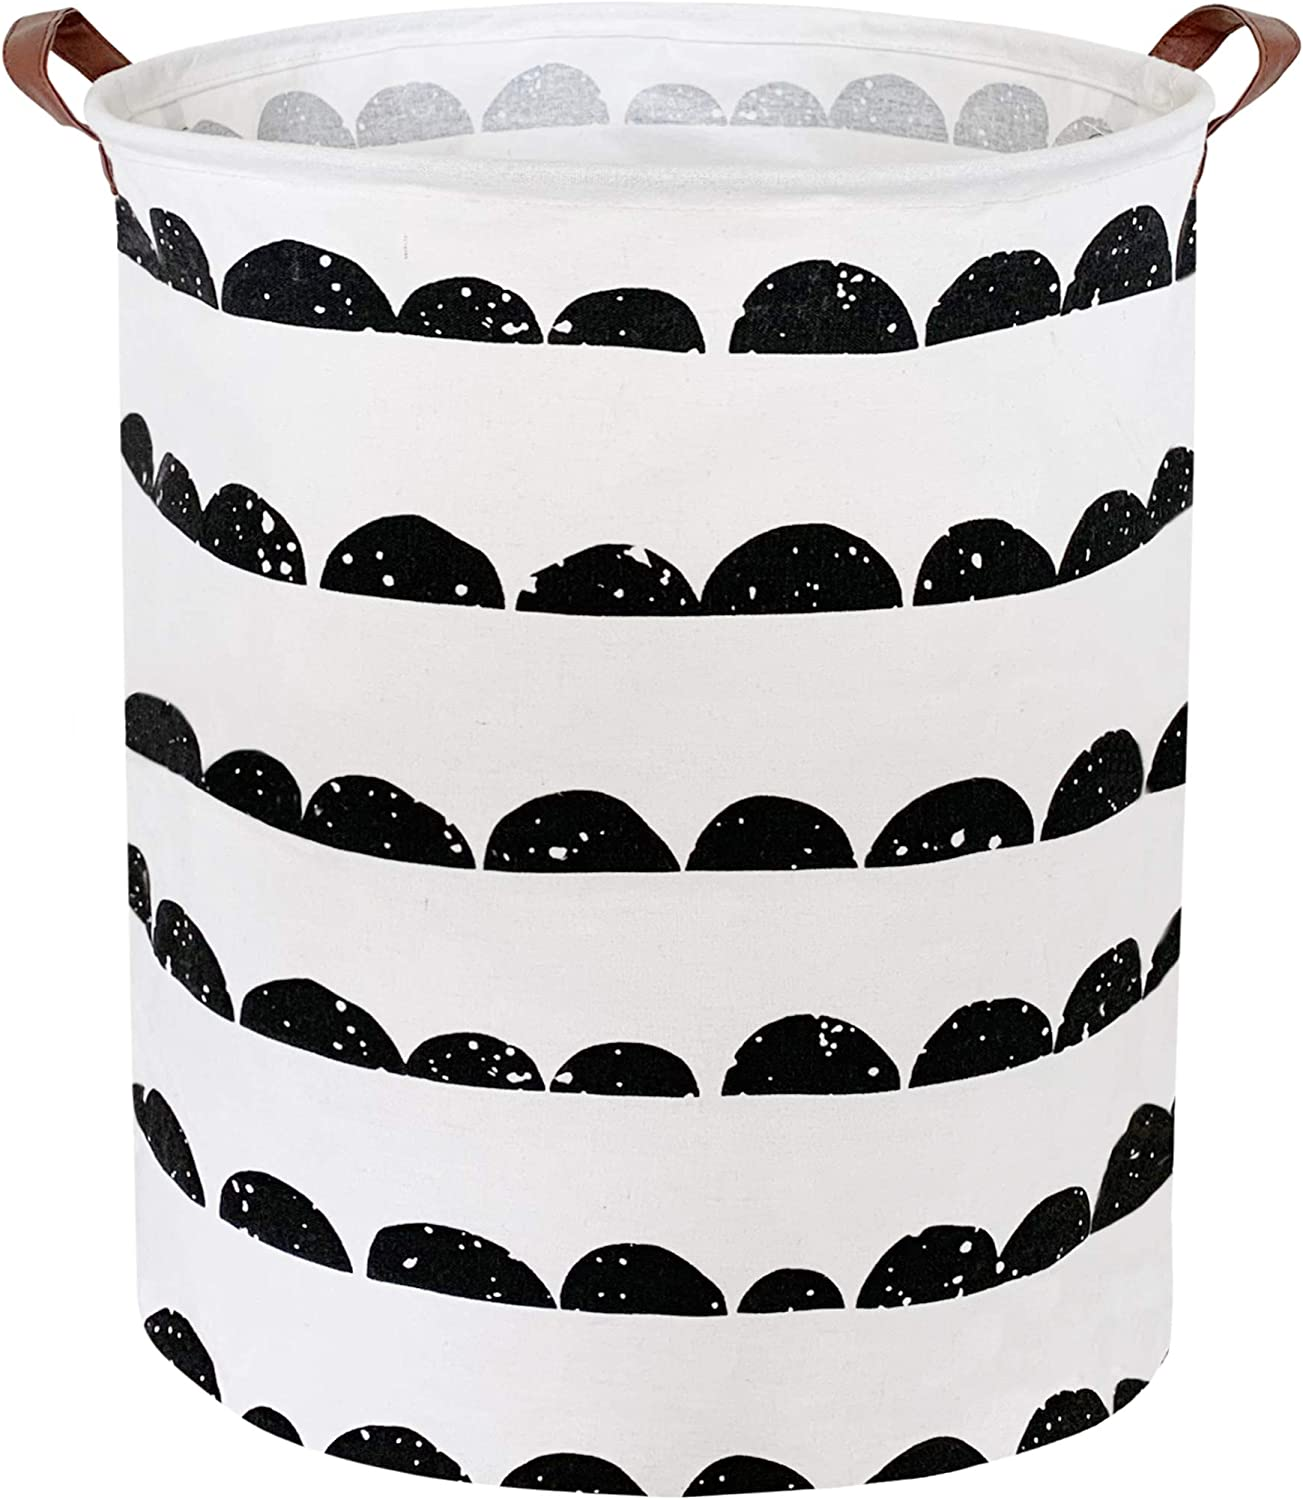 CLOCOR Laundry Basket,Laundry Hamper,Collapsible Storage Bin,Canvas Fabric Clothes Baskets,Nursery Hamper for Home,Office,Dorm,Gift Basket (Semi-Circle)